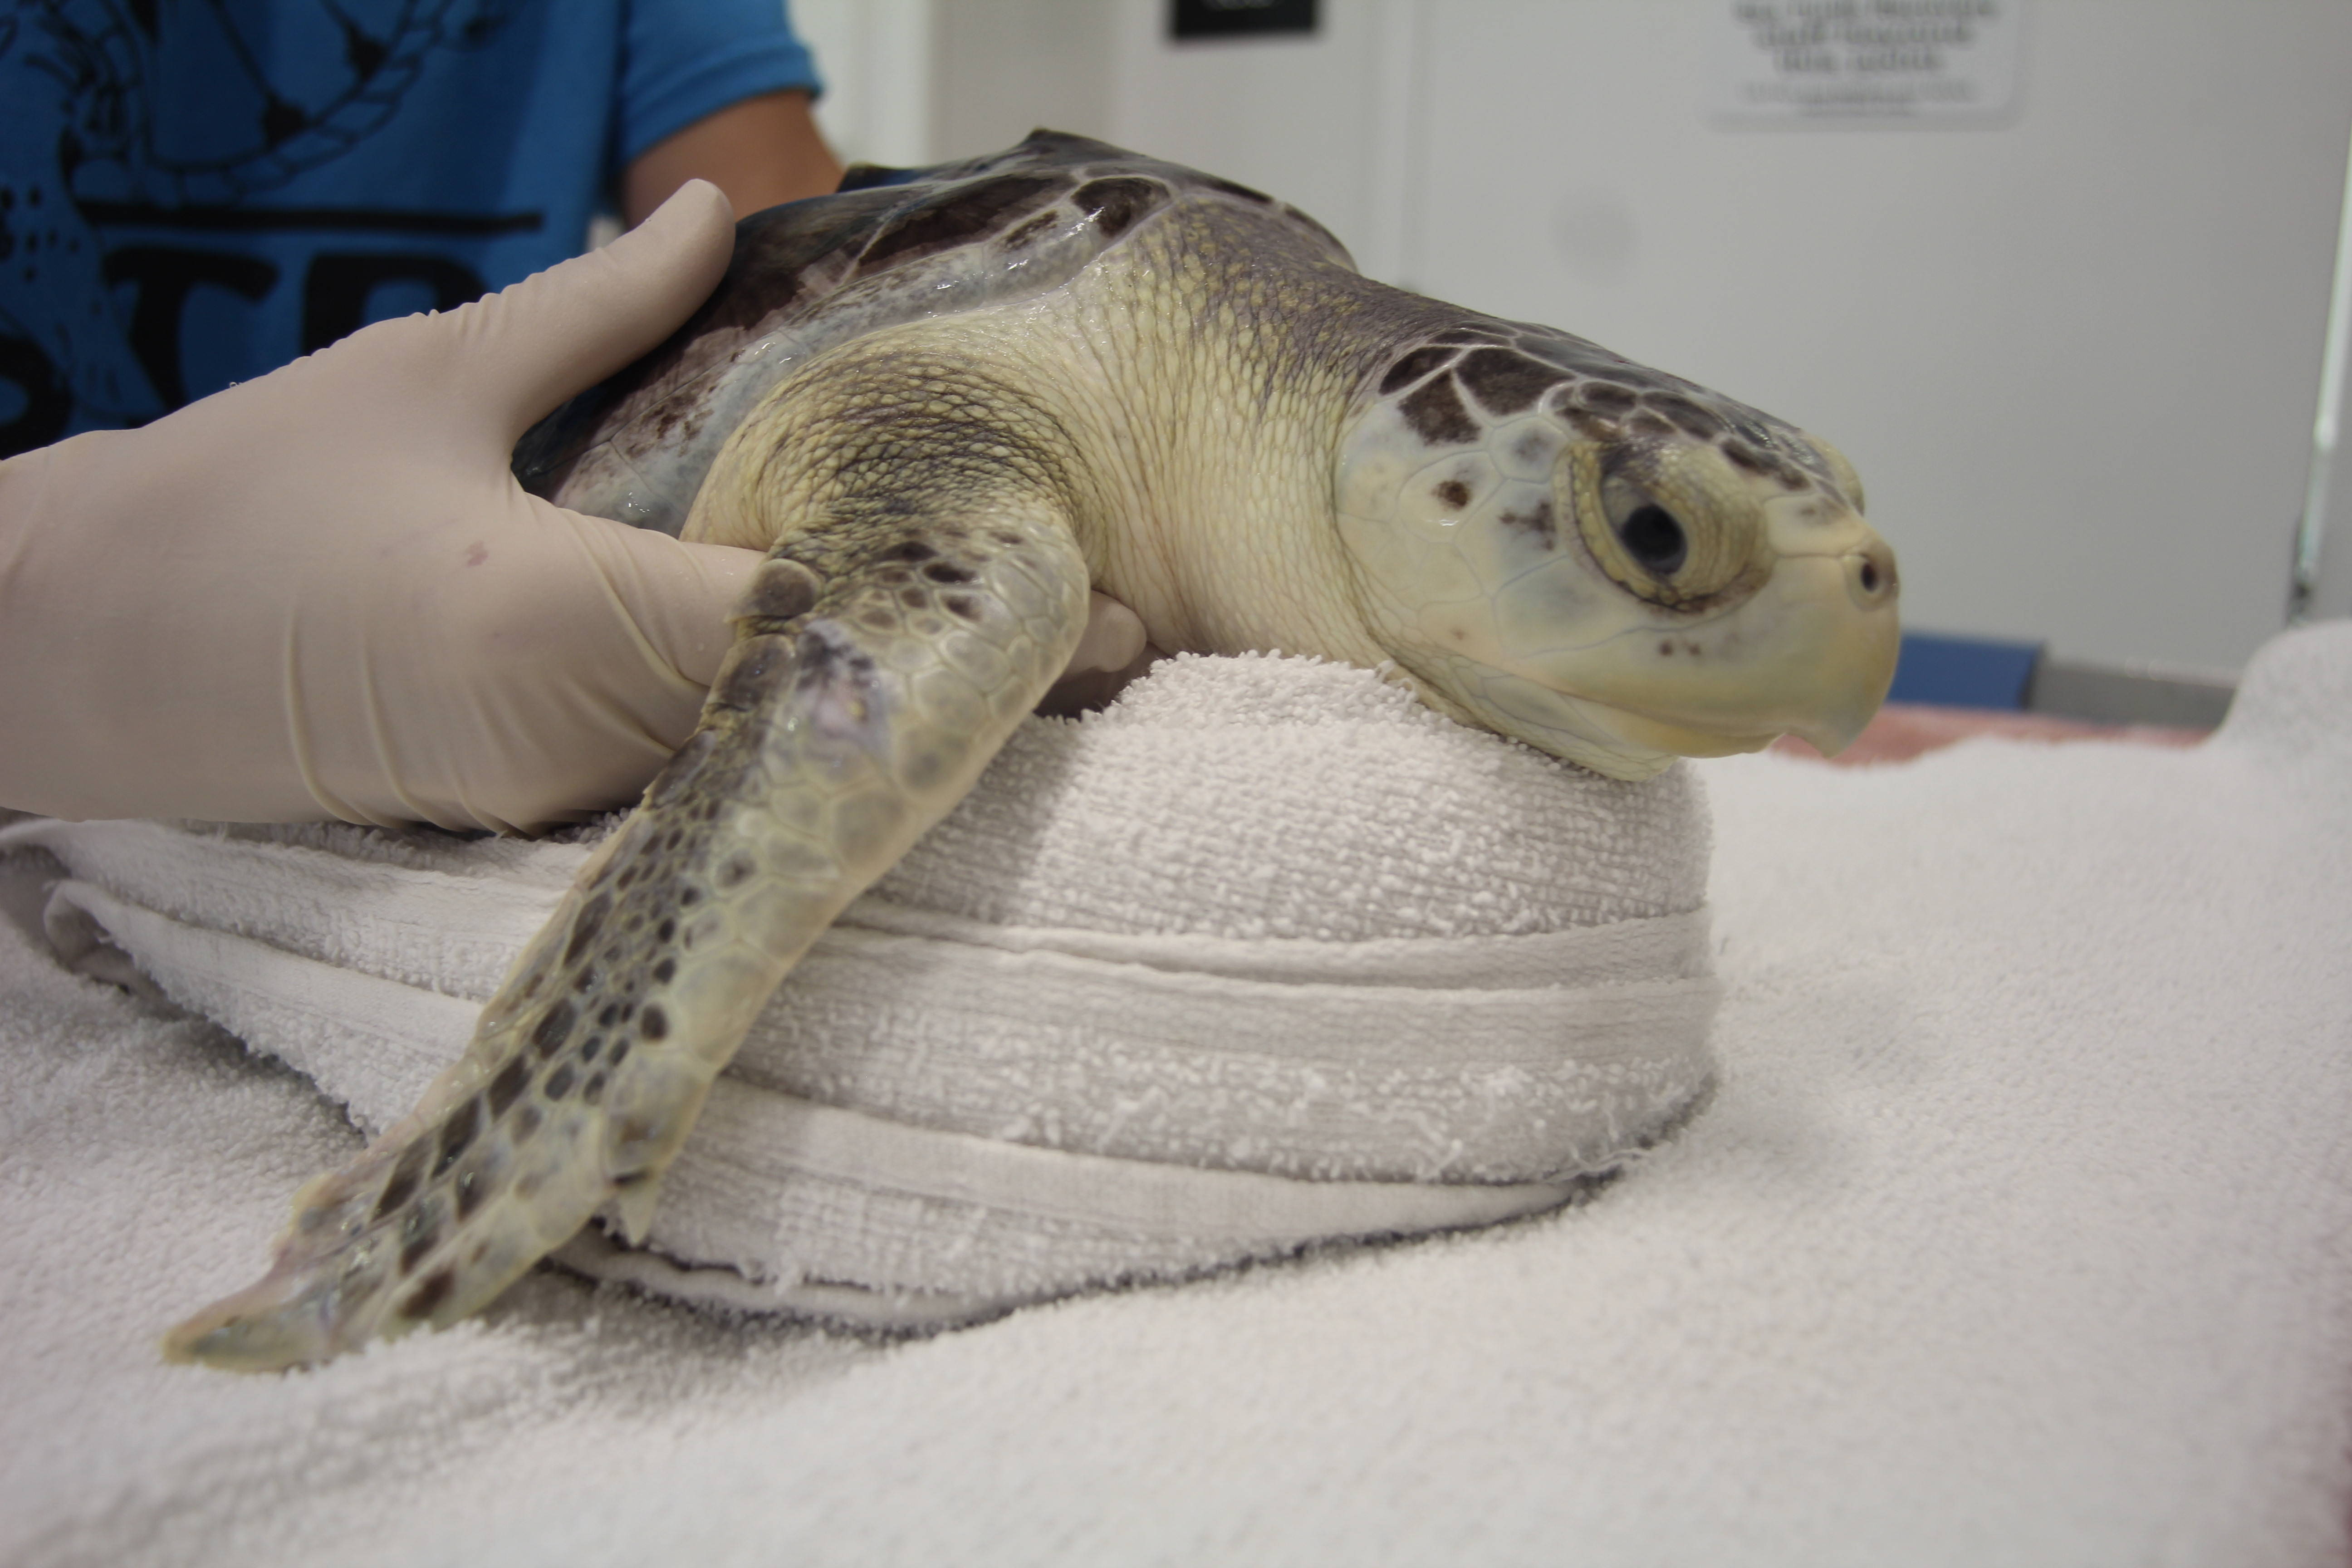 Four Healthy Sea Turtles to be Released at Point Pleasant Beach Tomorrow